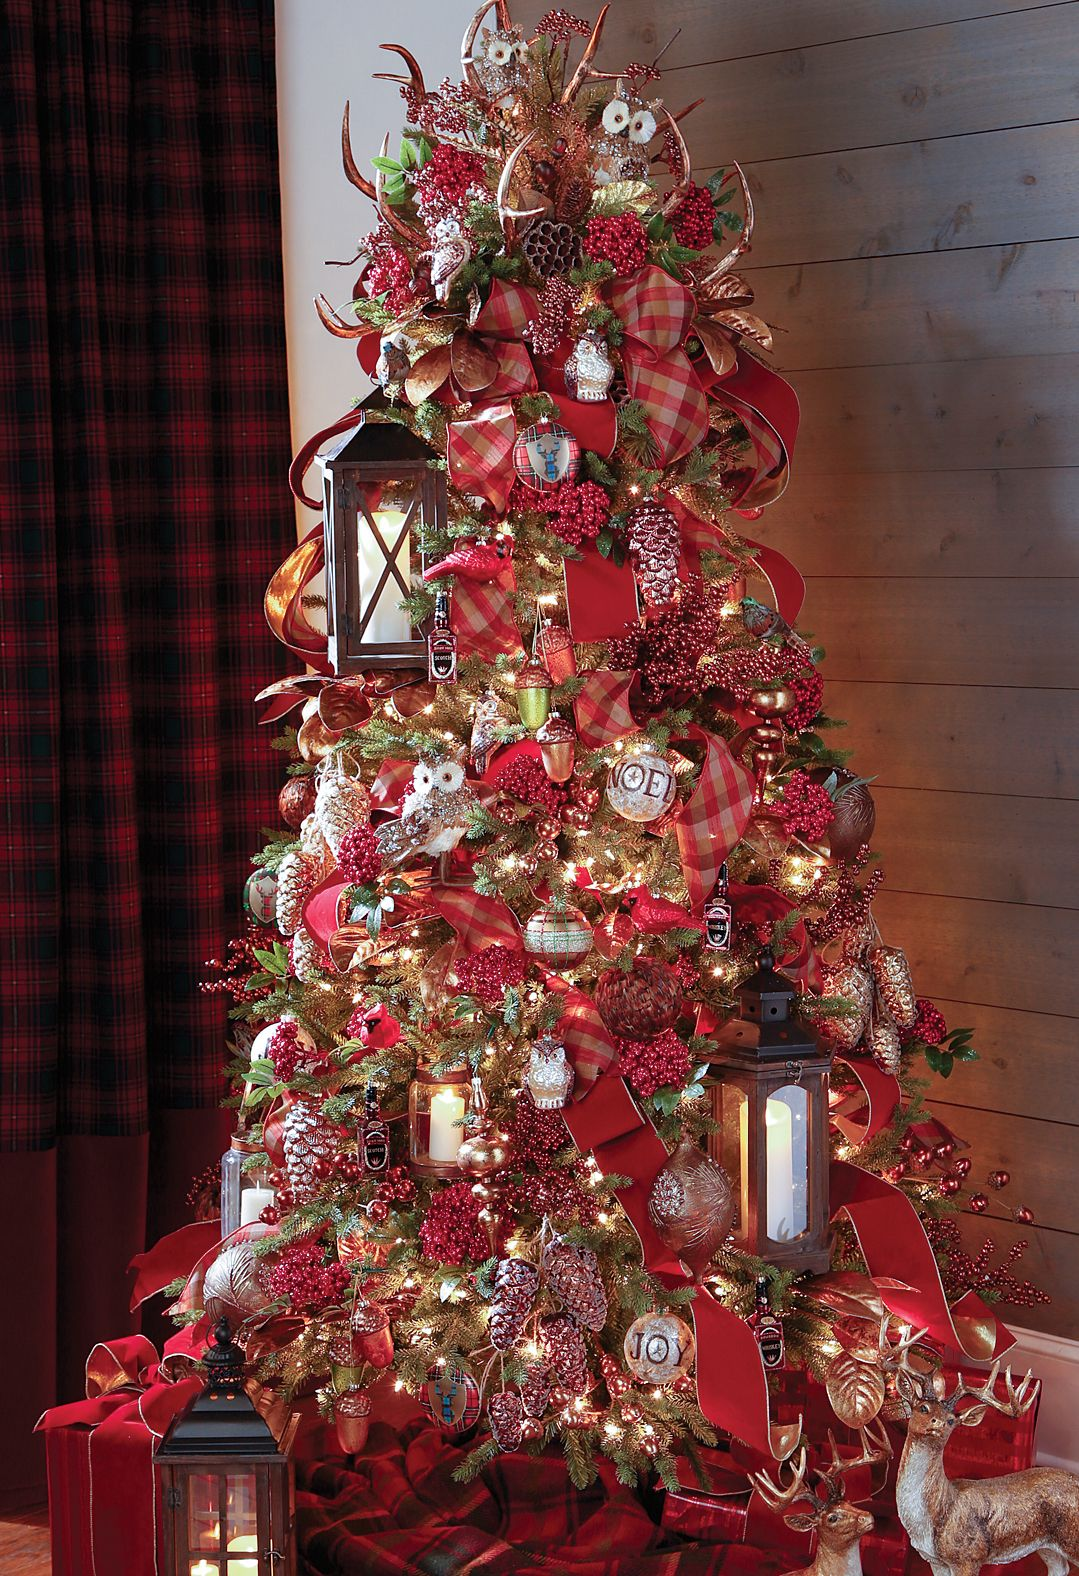 Raz 2017 Decorated Christmas Trees Trendy Tree Blog Holiday Decor Inspiration Wr Pre Decorated Christmas Tree Christmas Tree Themes Holiday Christmas Tree